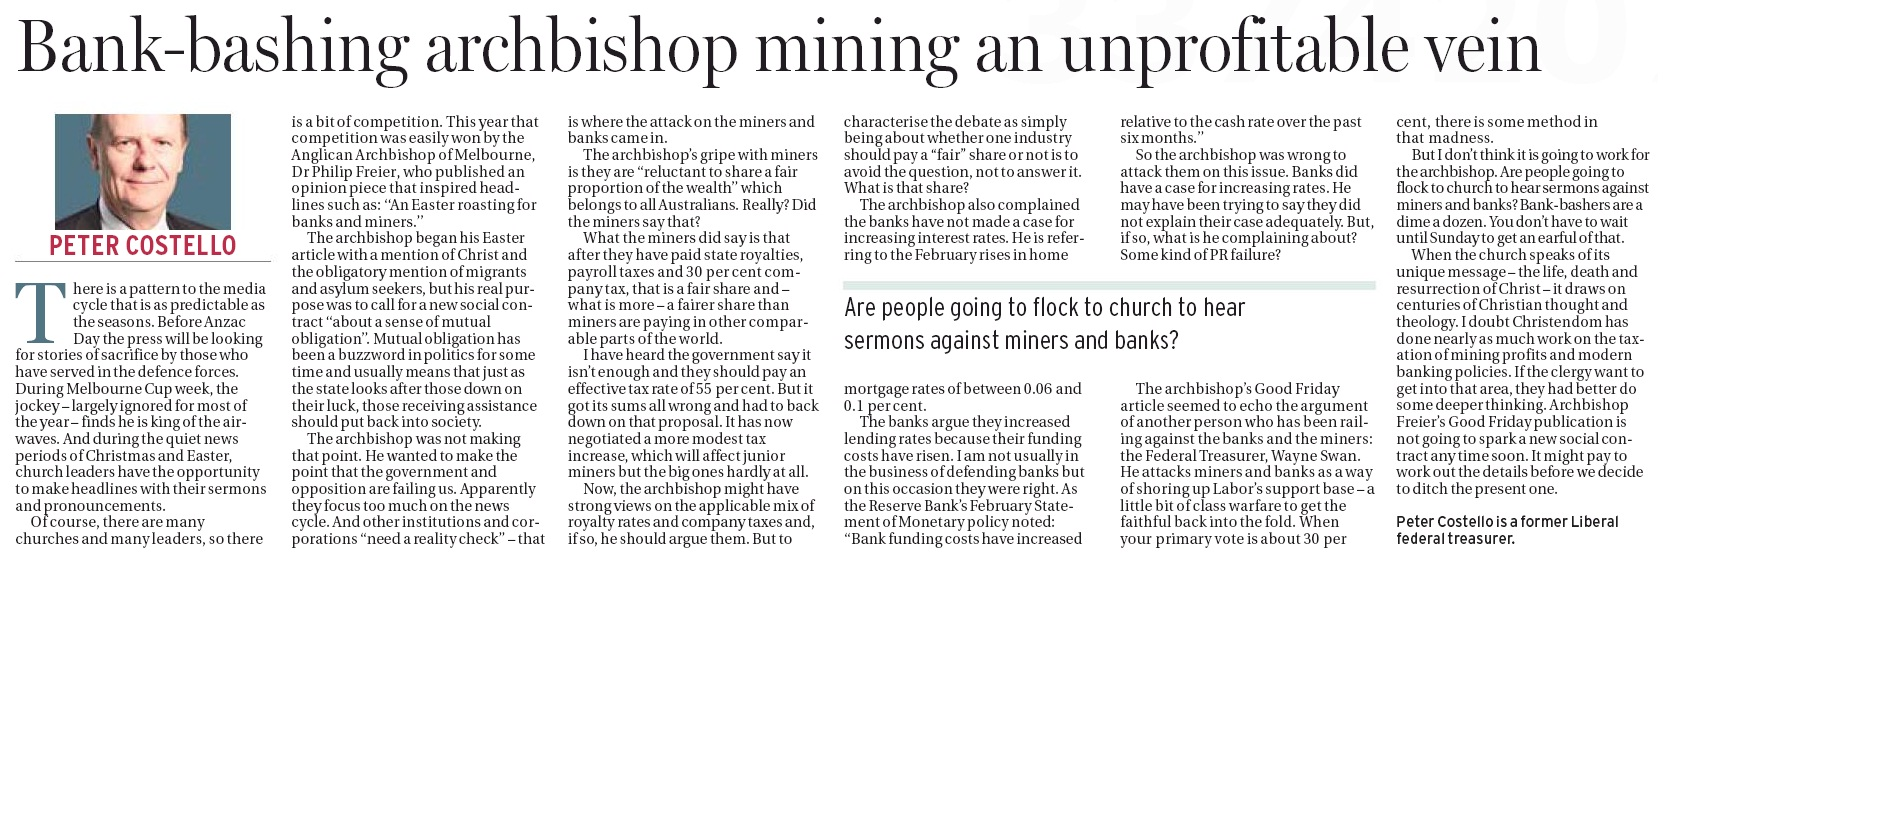 smh_-_bank-bashing_archbishop_mining_an_unprofitable_vein_-_11_april_2012jpg